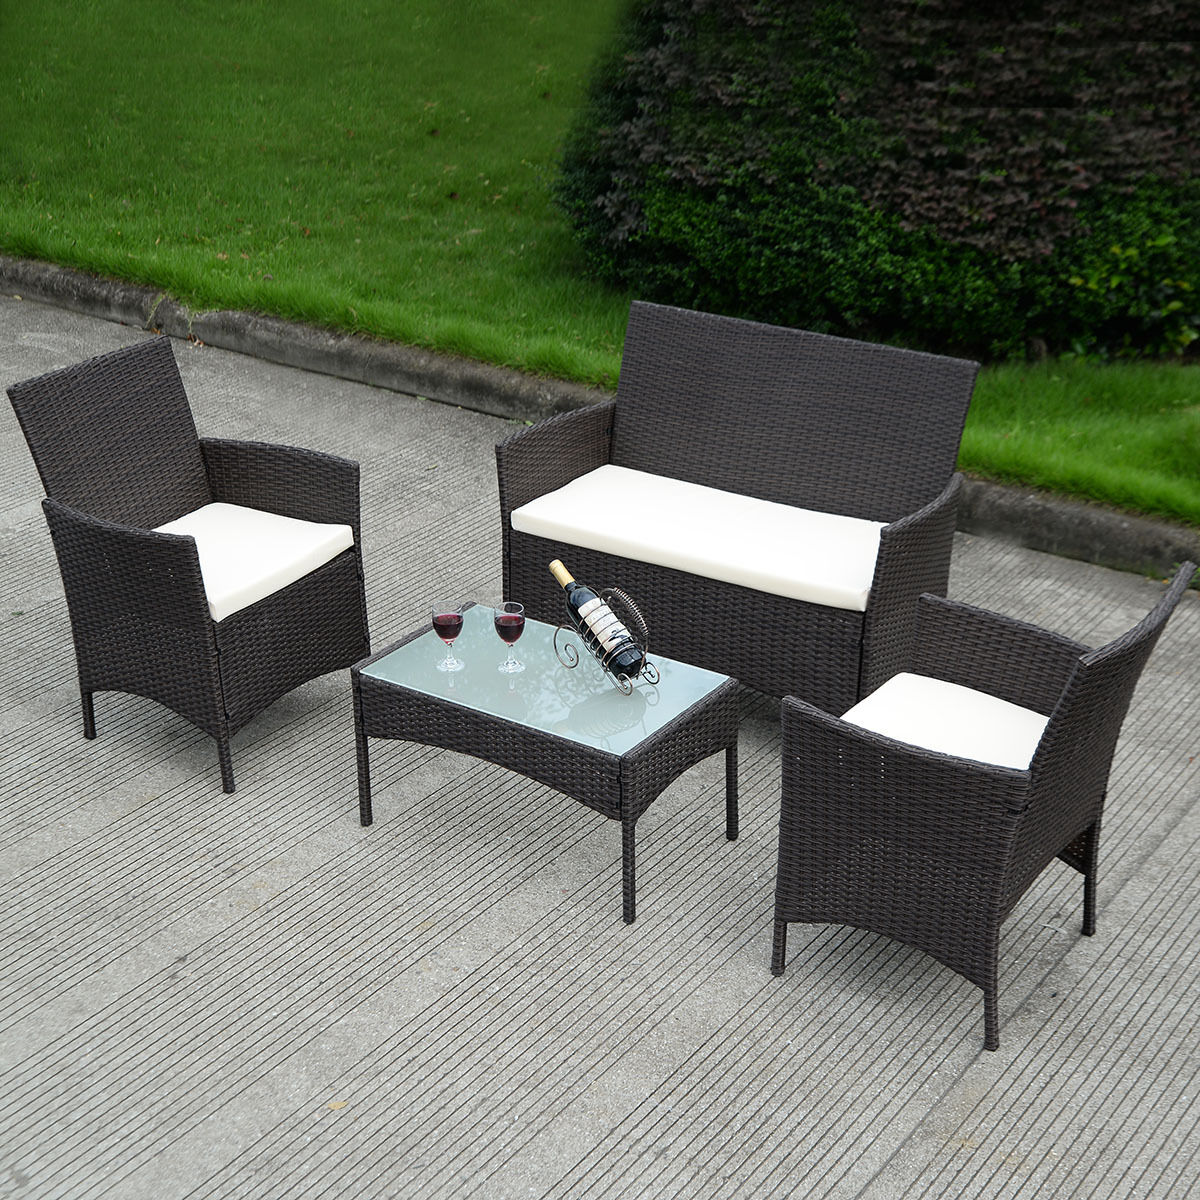 wonderful garden furniture table and chairs pc patio rattan wicker chair sofa set outdoor cushioned inside decor